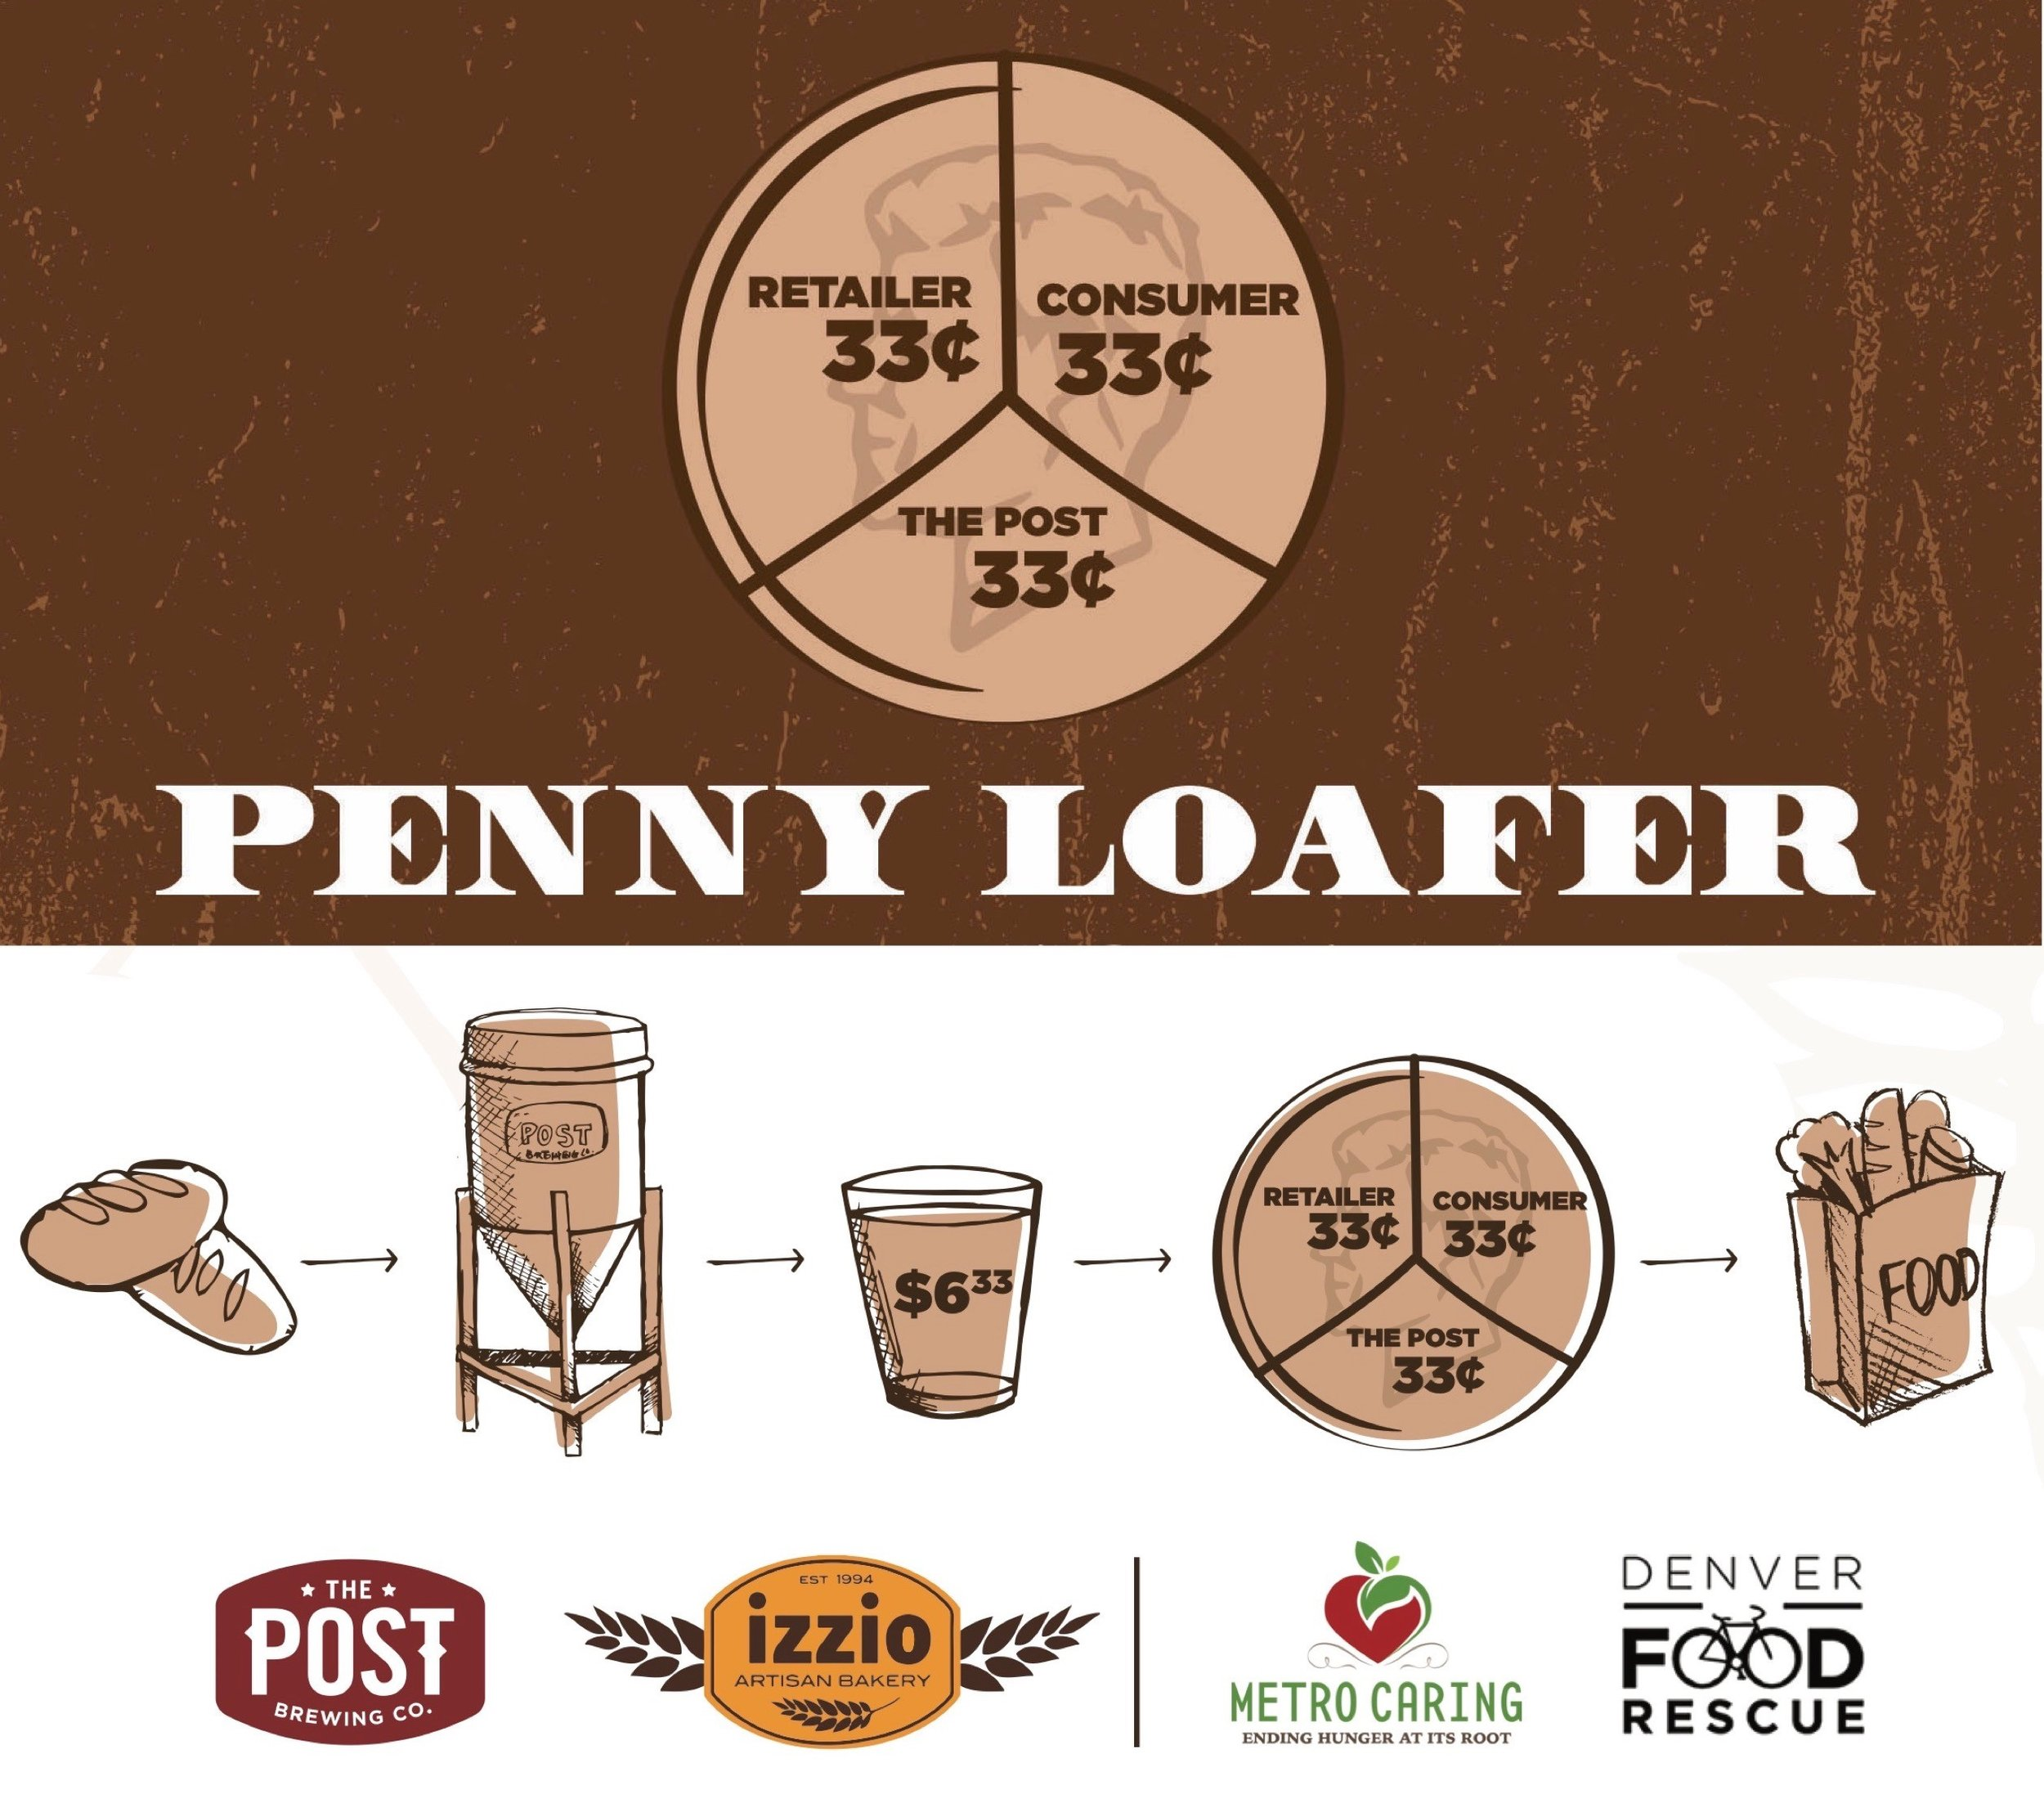 - ON TAP DURING JULY - Join us to Raise $ for Metro Caring and Denver Food RescueA collaboration between The Post Brewing Co., Izzio Artisan Bakery, beer retailers and the beer drinking public (that's you!) Together we're creating a sustainable donation to address the issues of food waste and food insecurity in Colorado.Penny Loafer Pale Ale features up-cycled ciabatta and sourdough bread replacing ⅓ of the grain that went in to make this beer. The result is a highly quaffable, bready pale ale with a touch of Palisade hops for balance, and a crisp finish. The lingering tanginess of sourdough is present after each sip.To make it taste even better, $1 from every pint of Penny Loafer sold is donated to Metro Caring & Denver Food Rescue. By sharing the financial lift between The POST (during the brewing process), beer retailers (during the purchasing process), and the beer drinking public (by purchasing at $6.33 per pint), we've created something that is both sustainable and scalable with much longer-lasting and farther reaching benefits than a simple one-time fundraiser would.For Info: 303-296-2600 or info@ignite-denver.com!